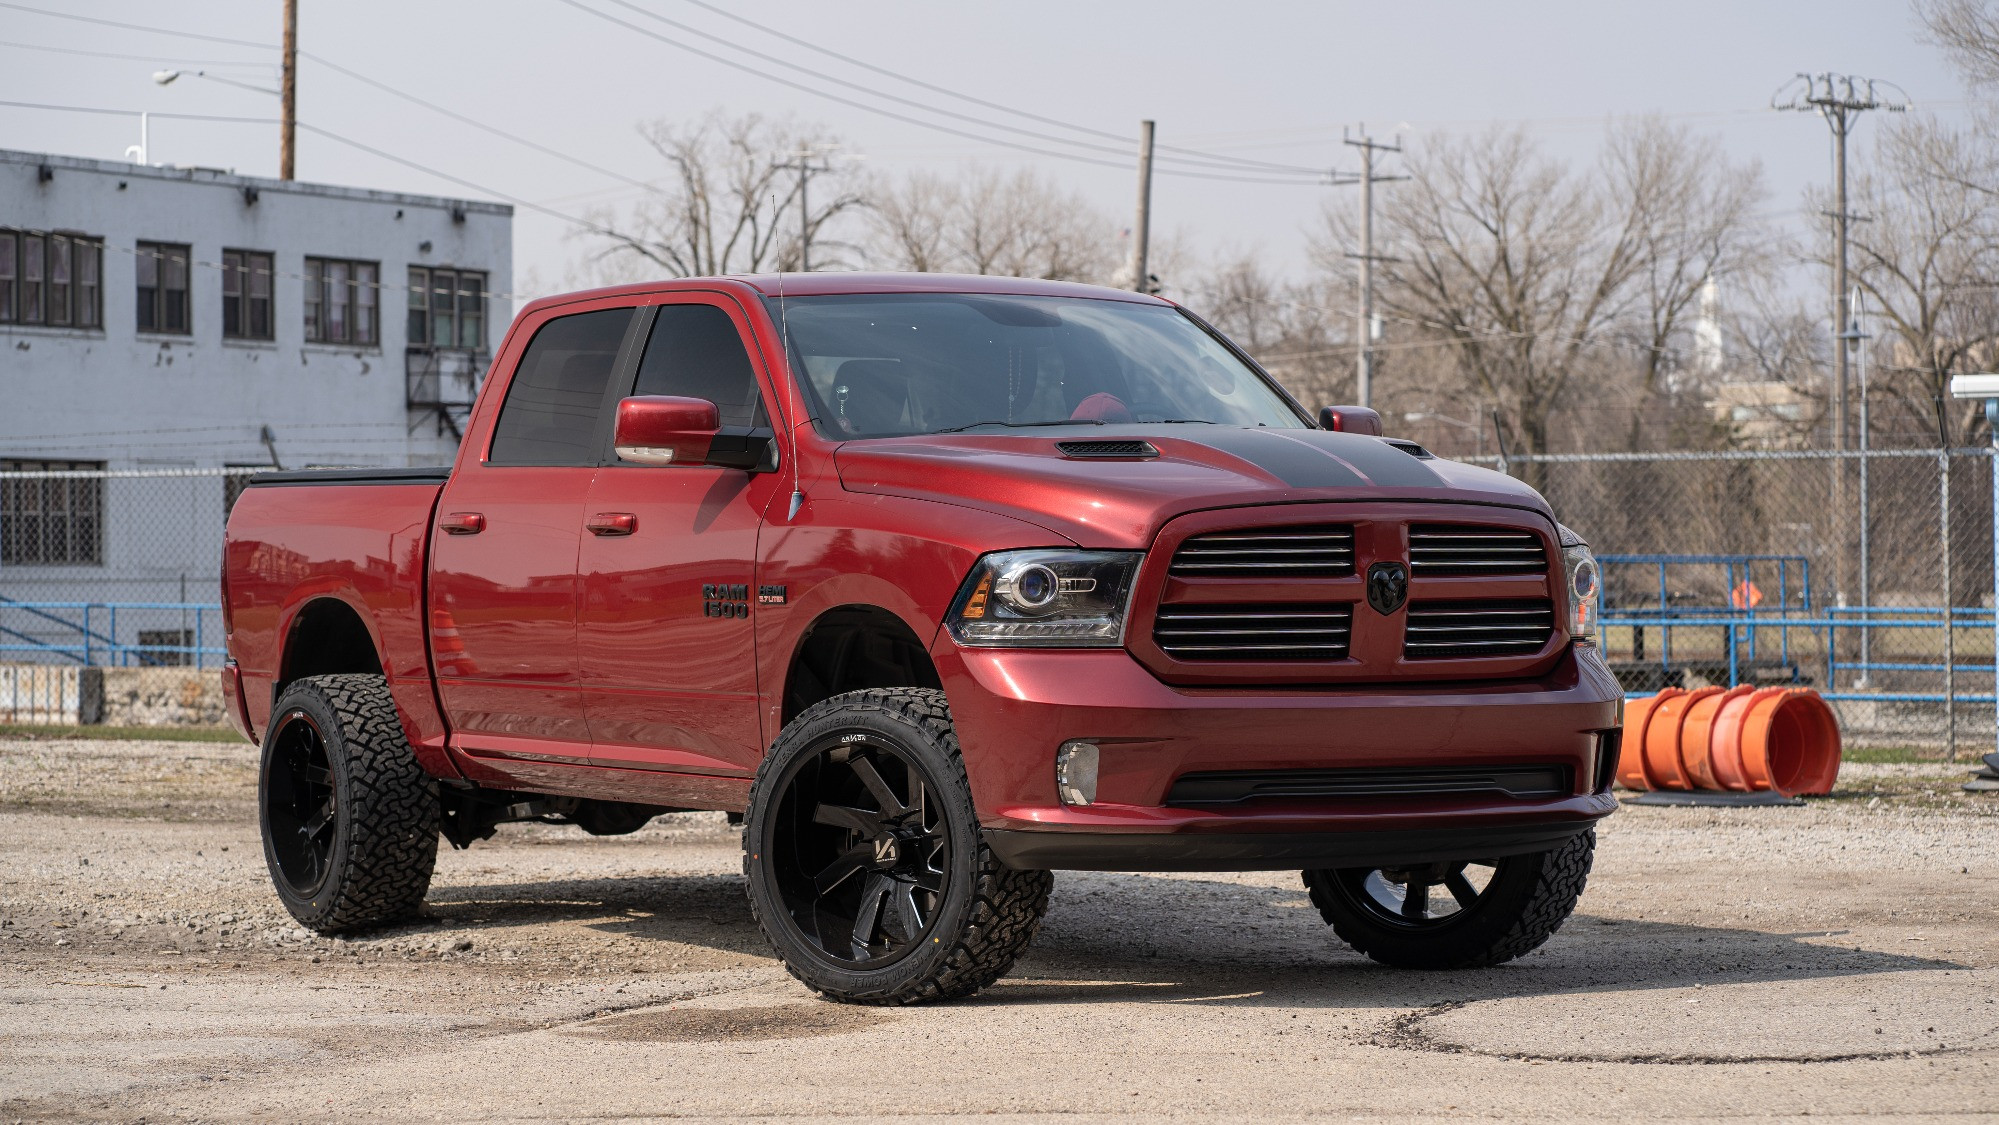 Lifted Ram 1500 with ARKON wheels